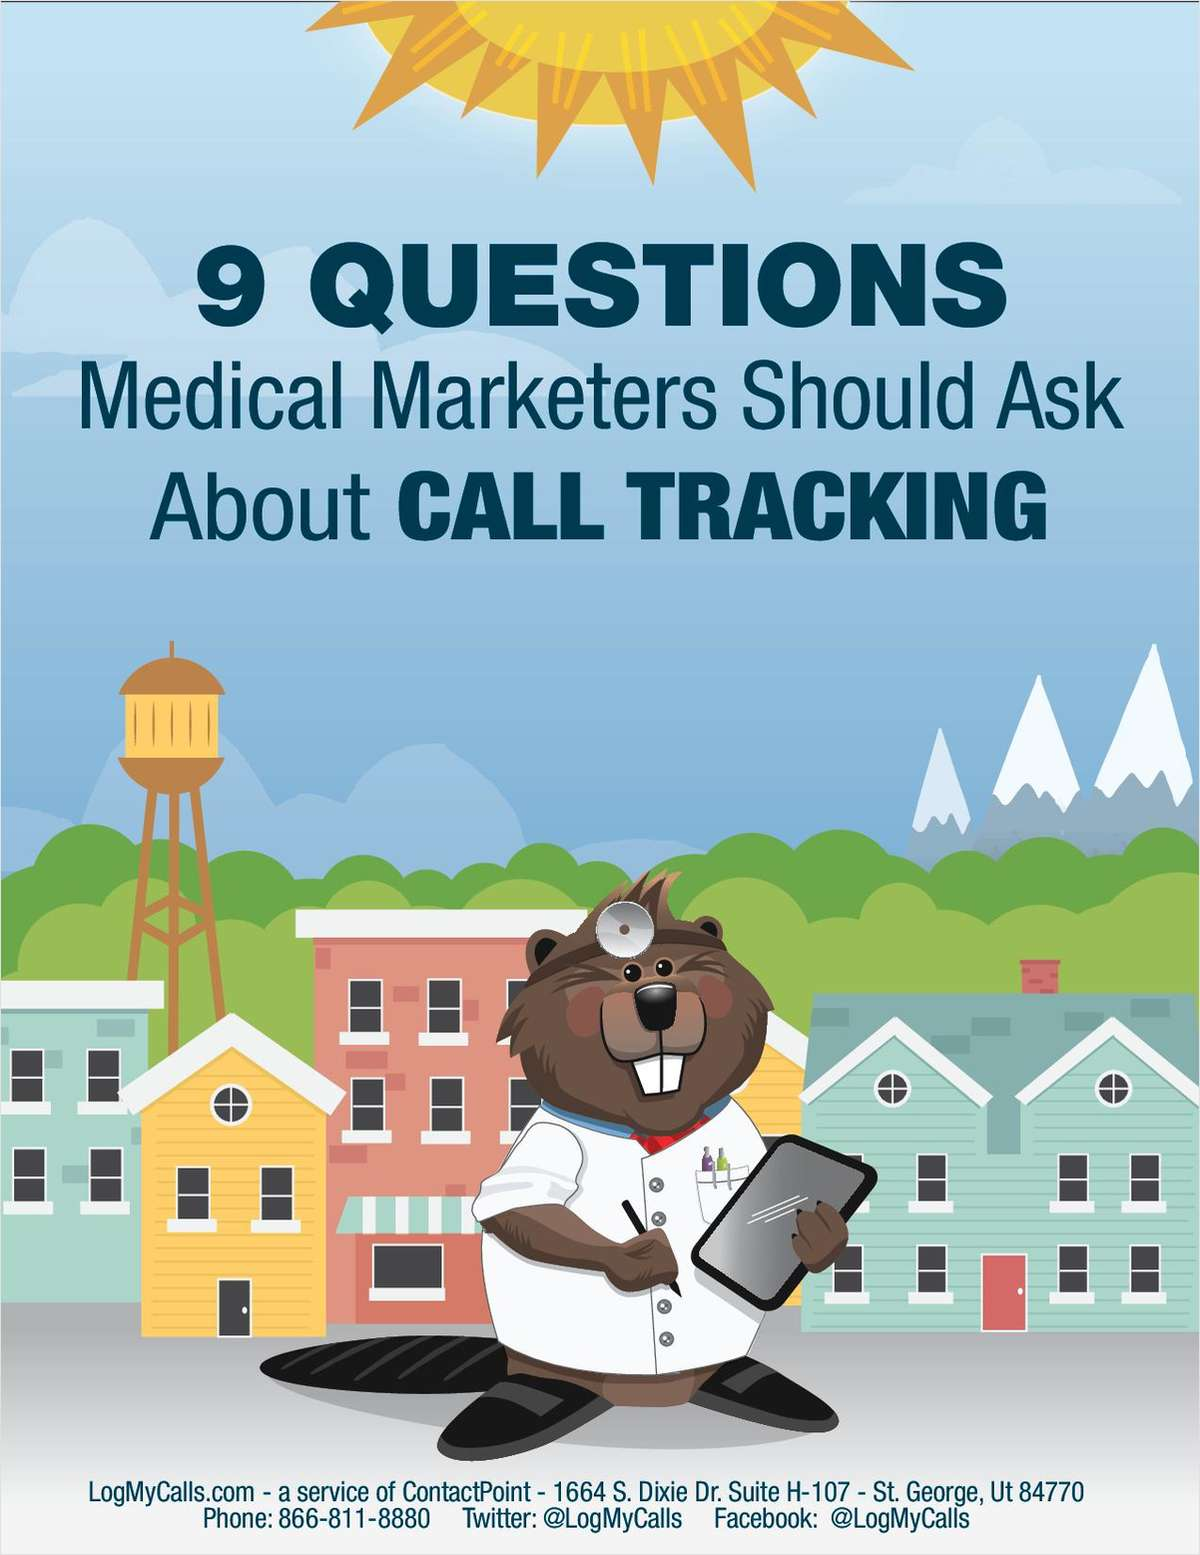 9 Questions Medical Marketers Should Ask About Call Tracking